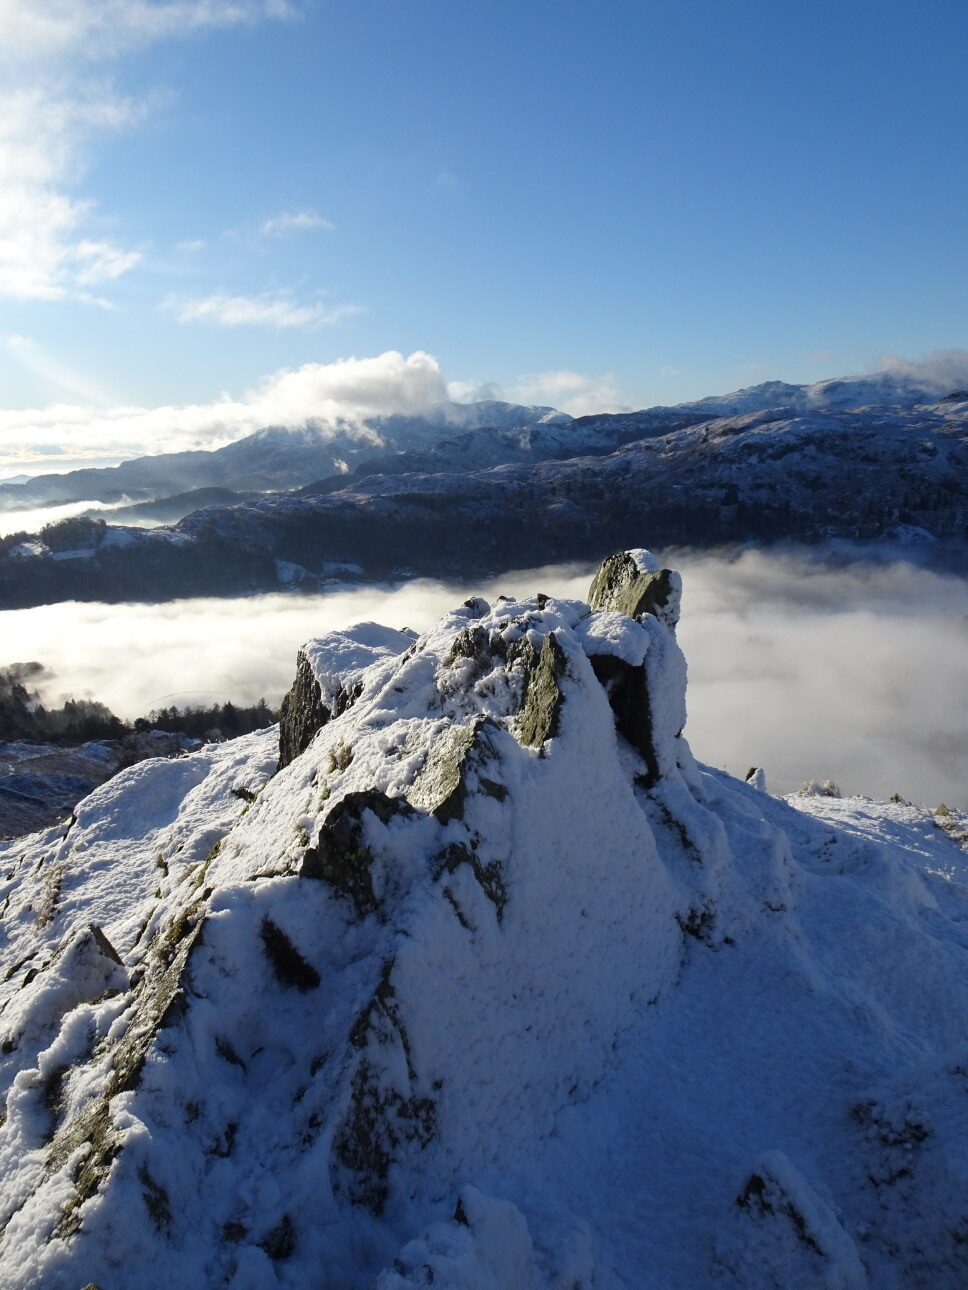 The top rocks of Butter Crags – the destination of the famous Grasmere Sports Senior Guides Race. Taken at 1:59pm.